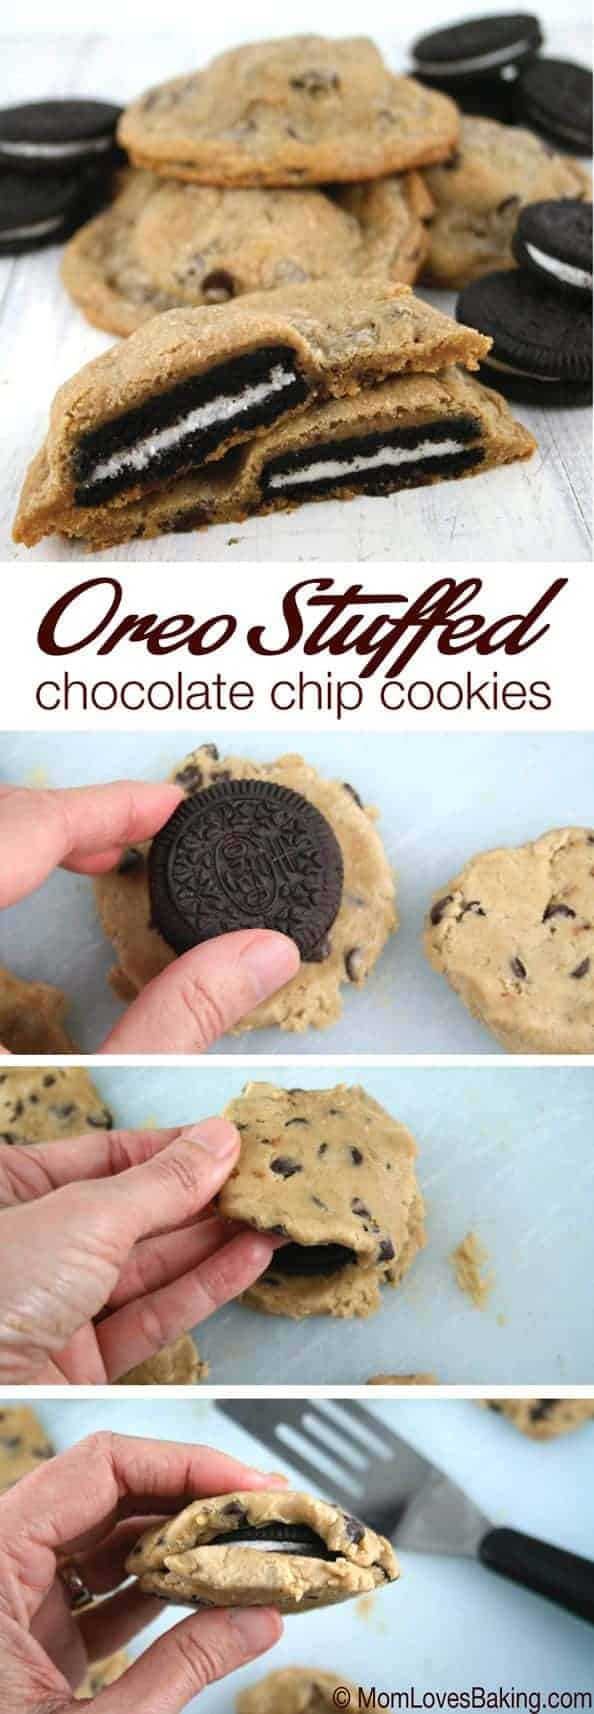 Oreo-Stuffed-Chocolate-Chip-Cookies-How-To